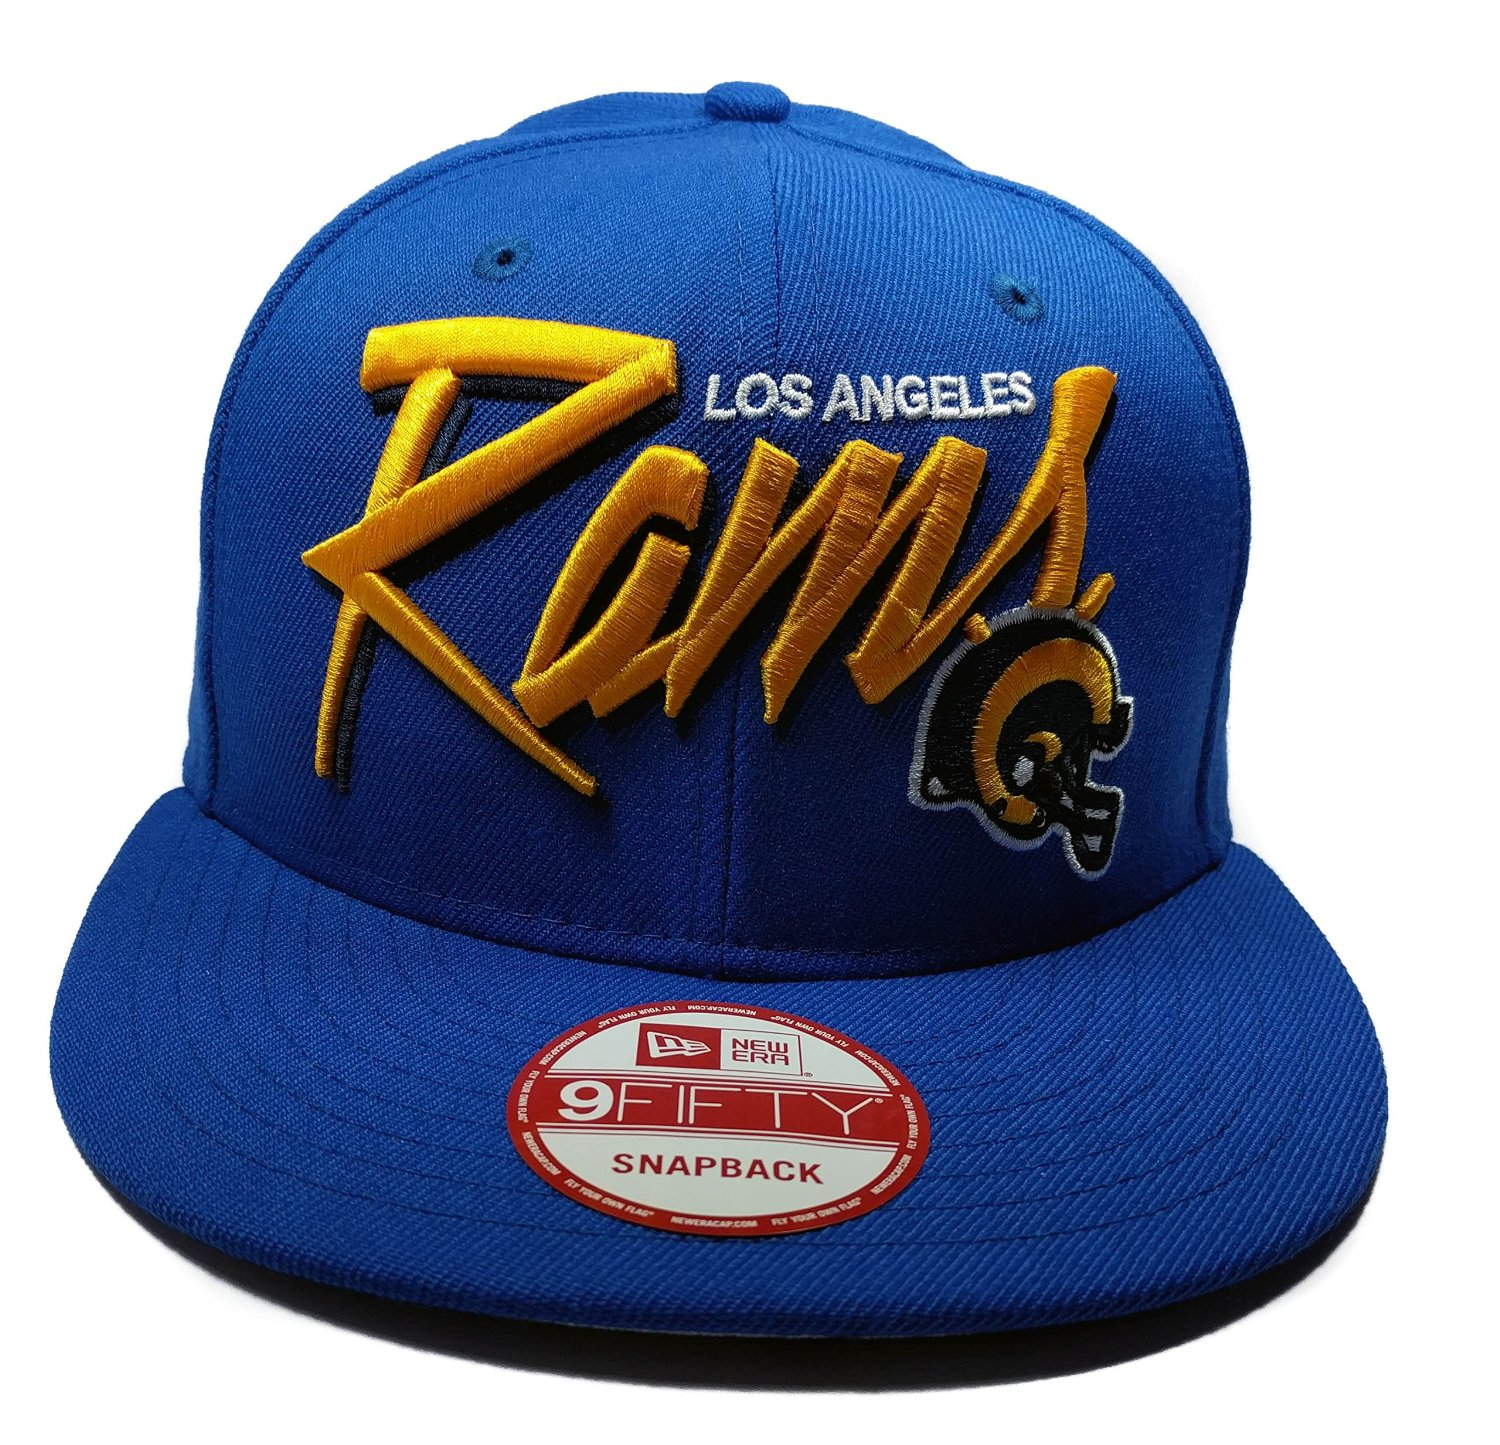 check out ad6ab 2cf47 New Era Los Angeles Rams 9Fifty Blue Vintage Sketch Script Adjustable Snapback  Hat NFL